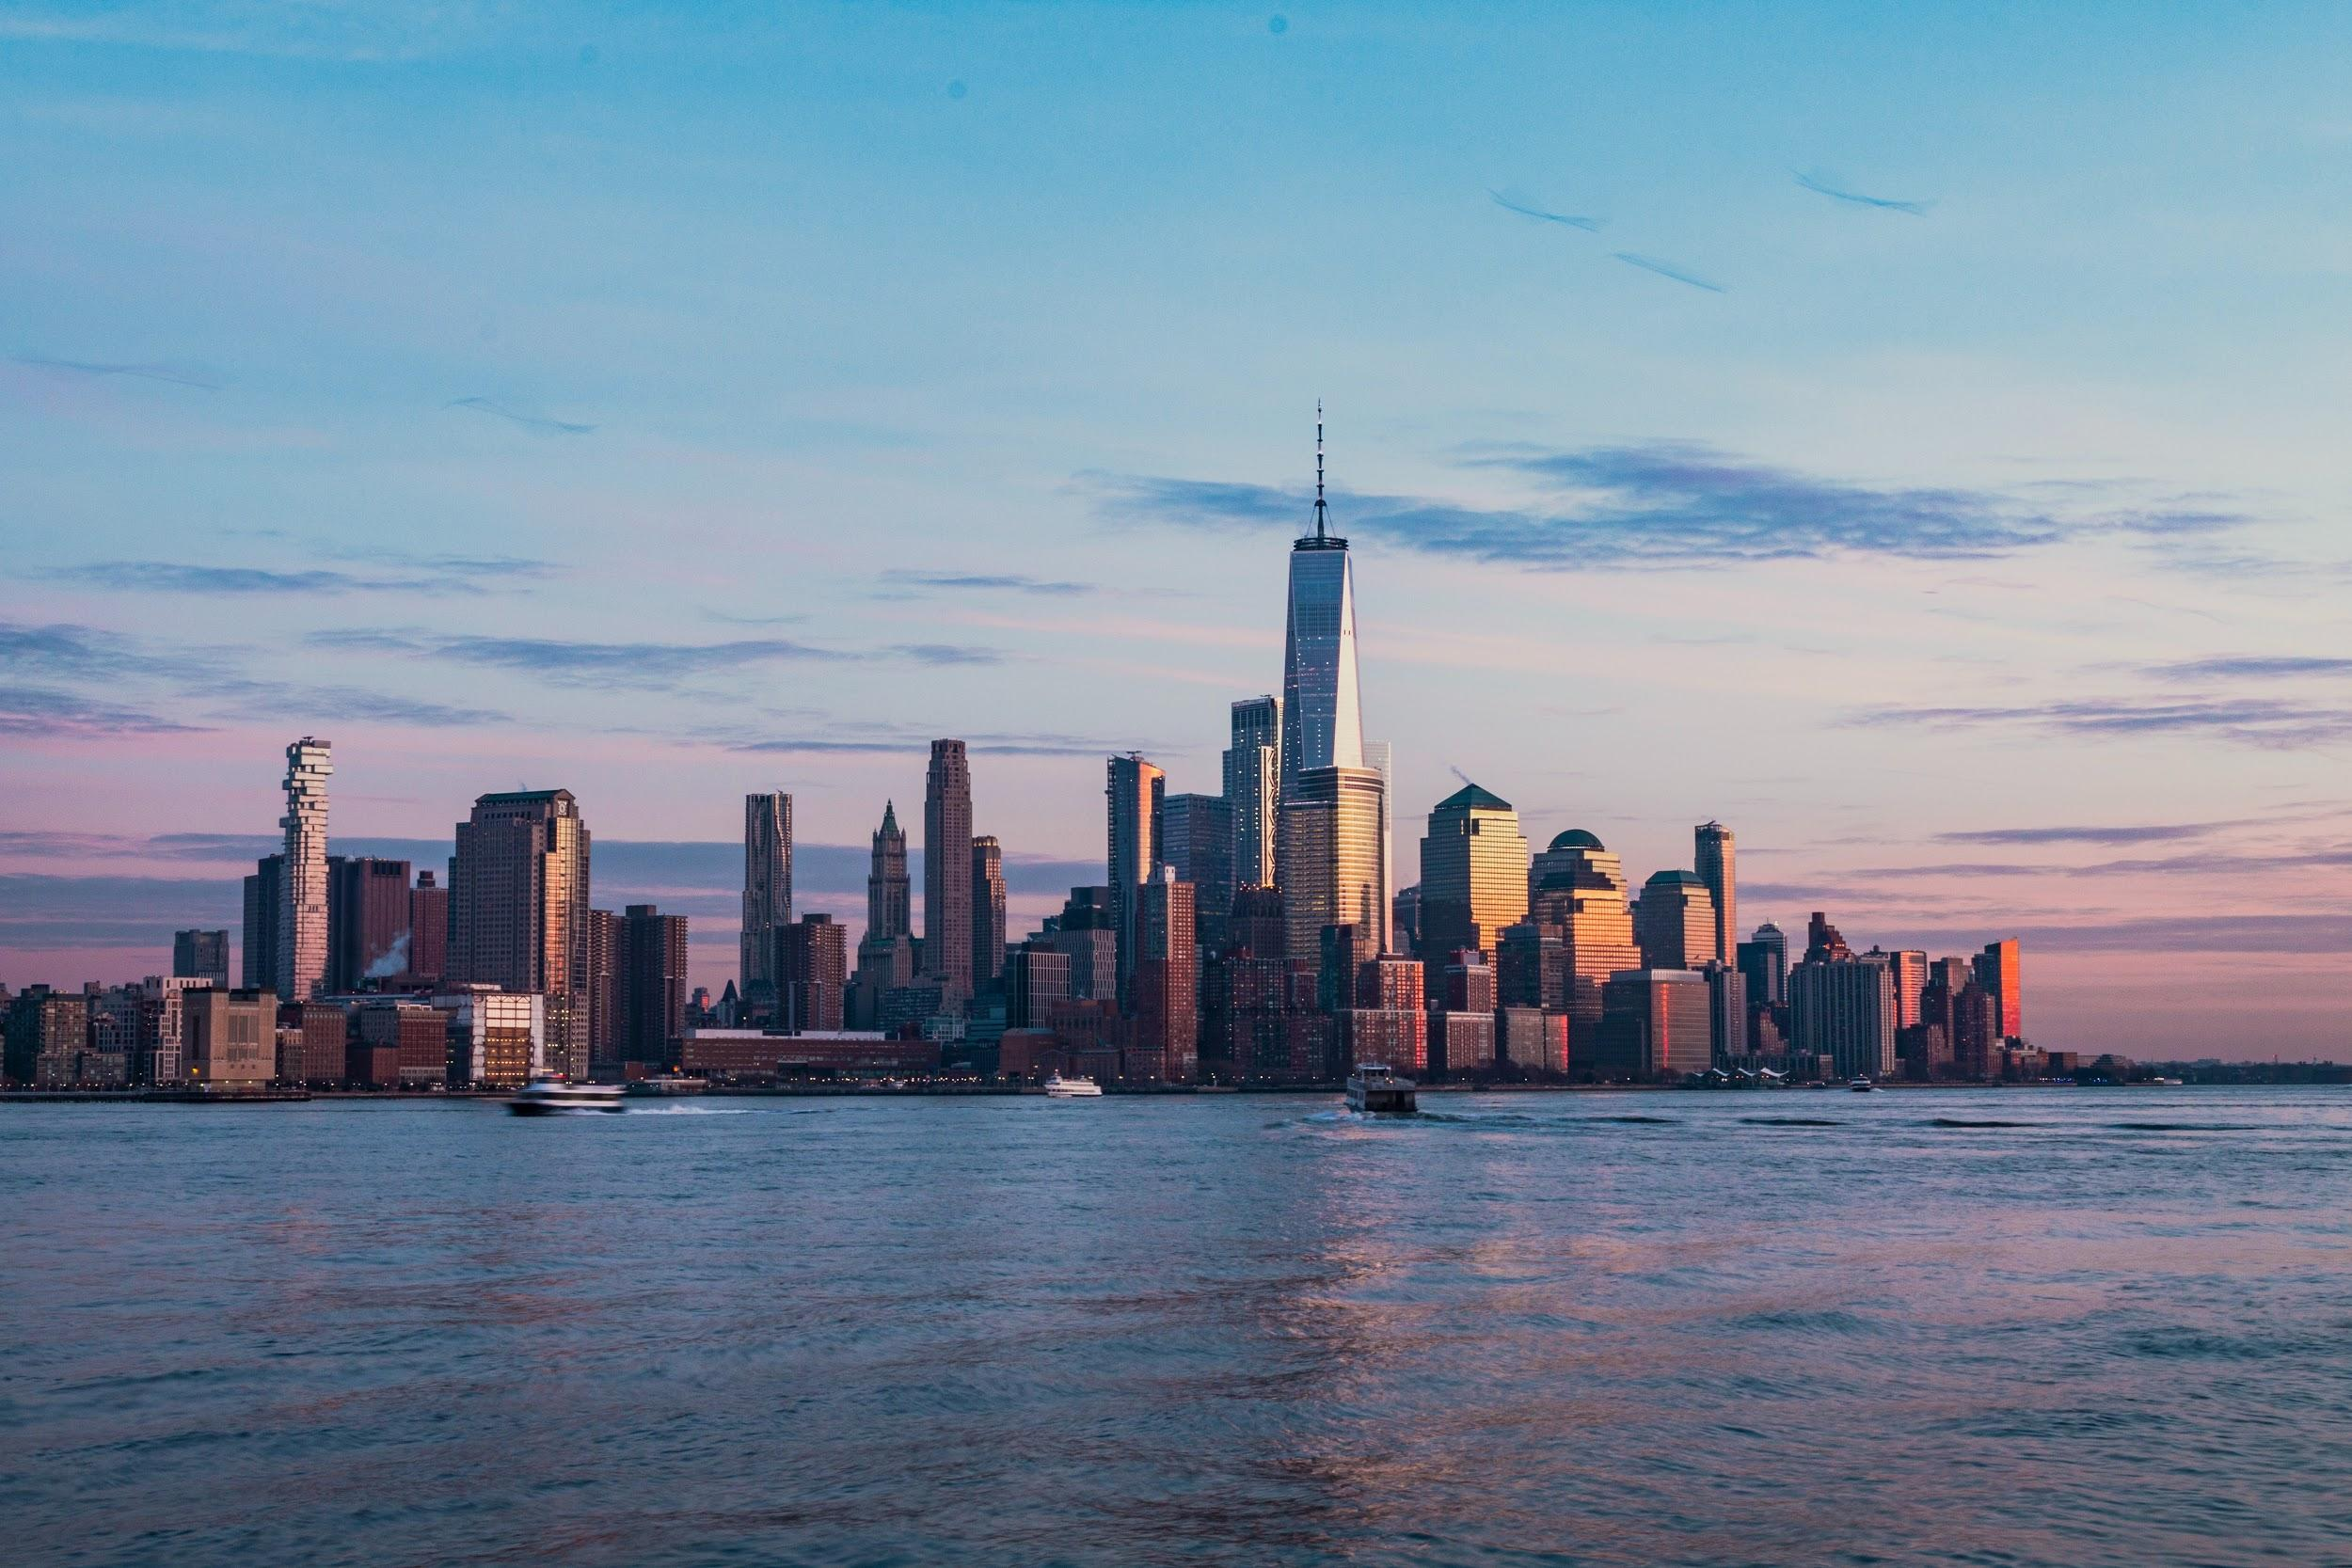 Panorama of the New York City during the sunset